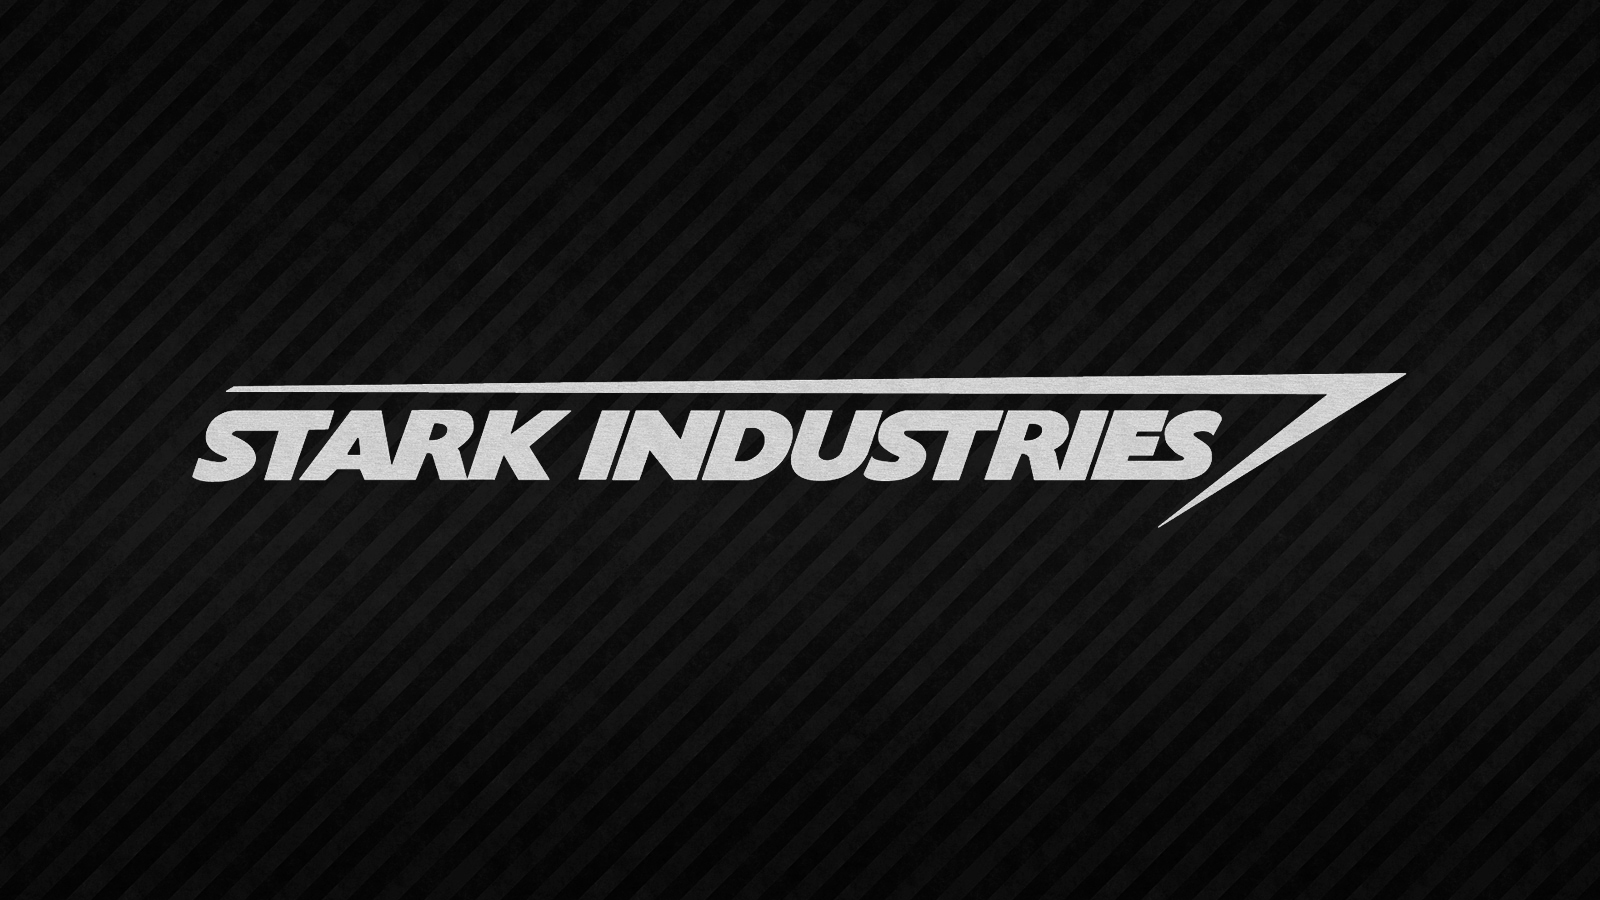 Stark Industries Wallpaper